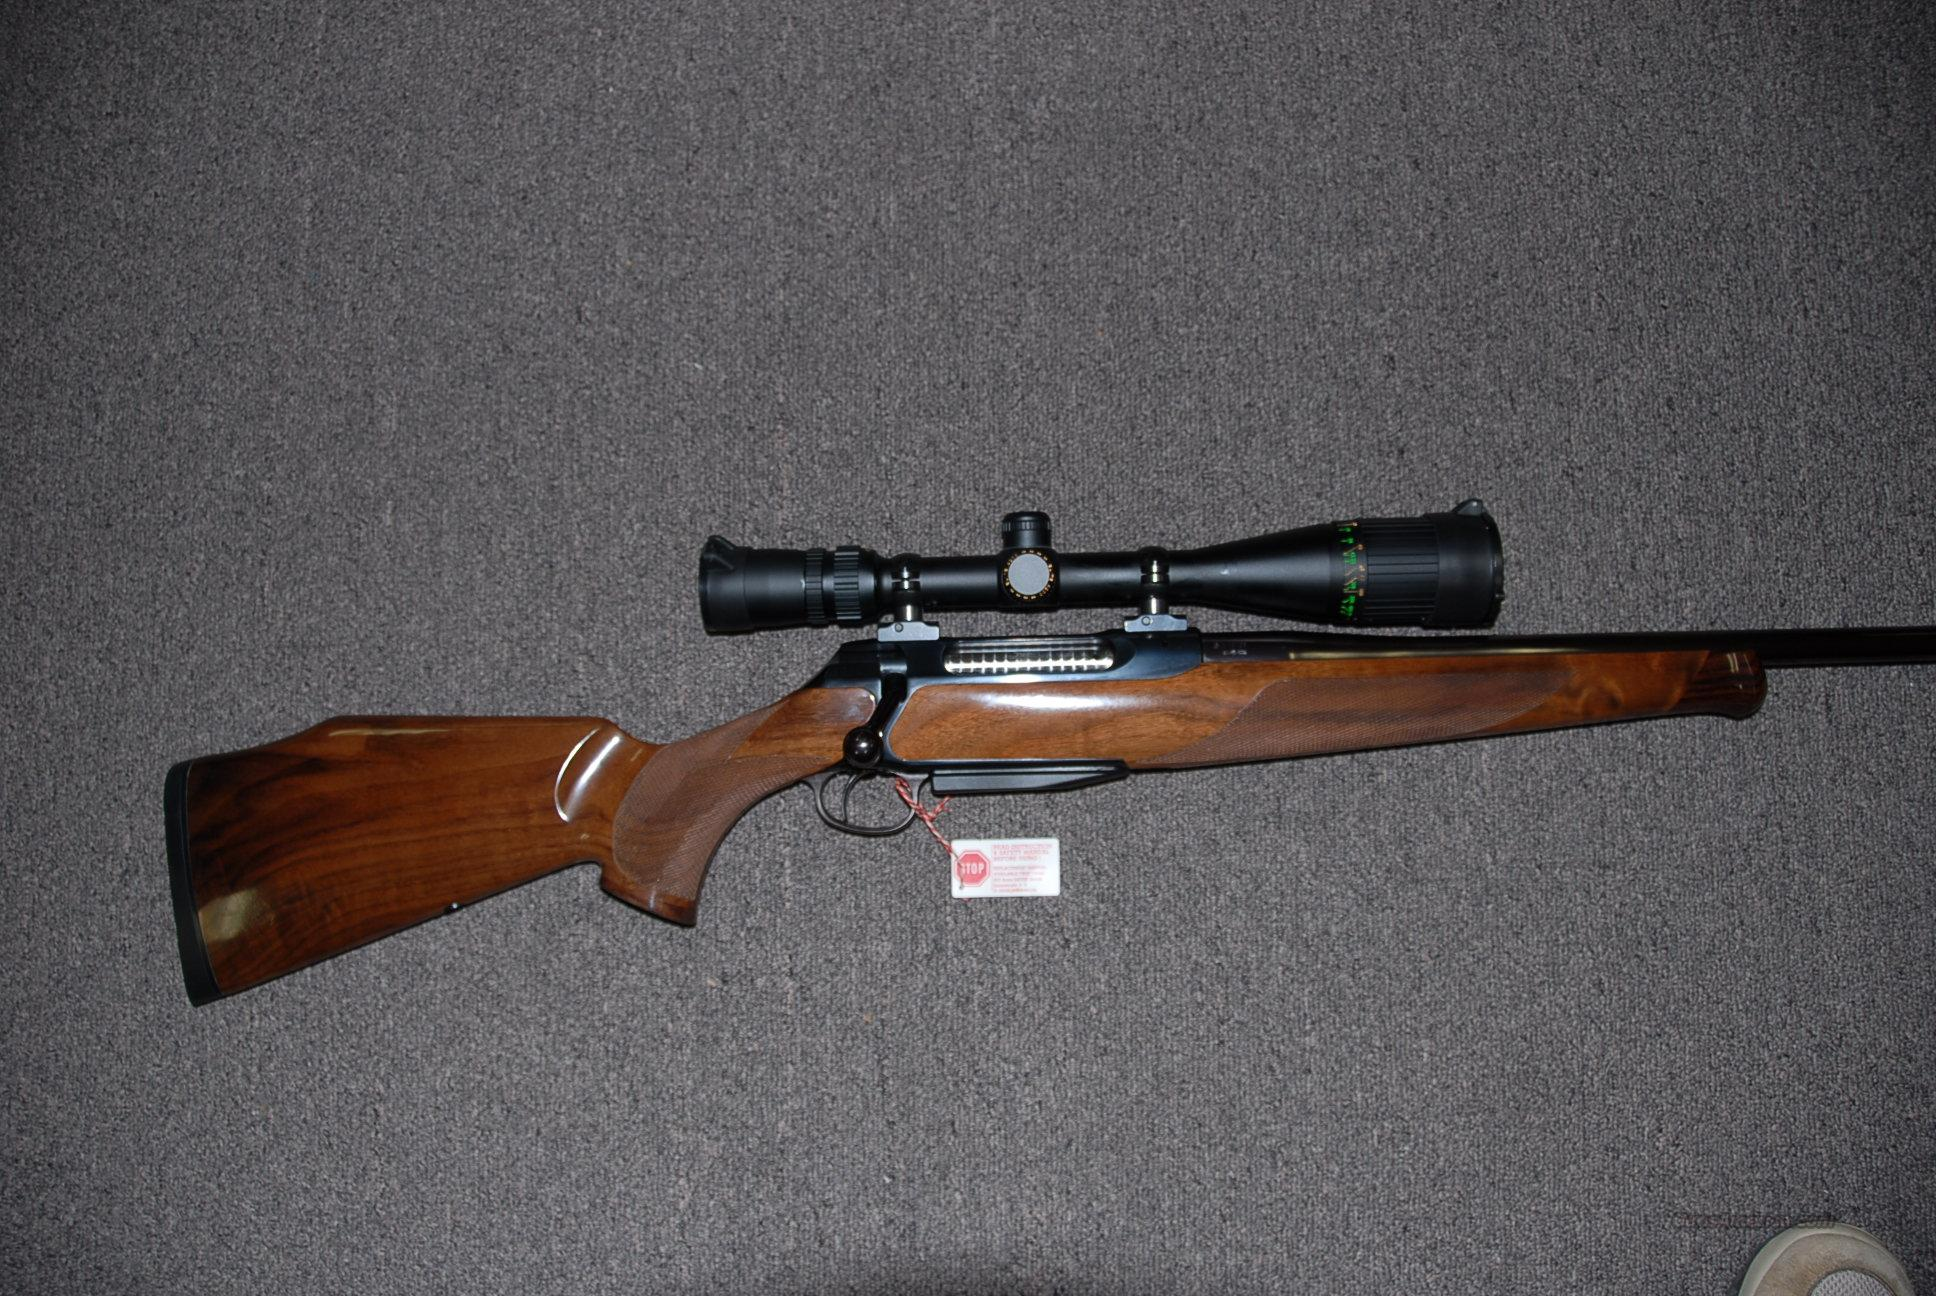 Sauer 202 Delux, .300 Win Mag w/scope  Guns > Rifles > Sigarms Rifles